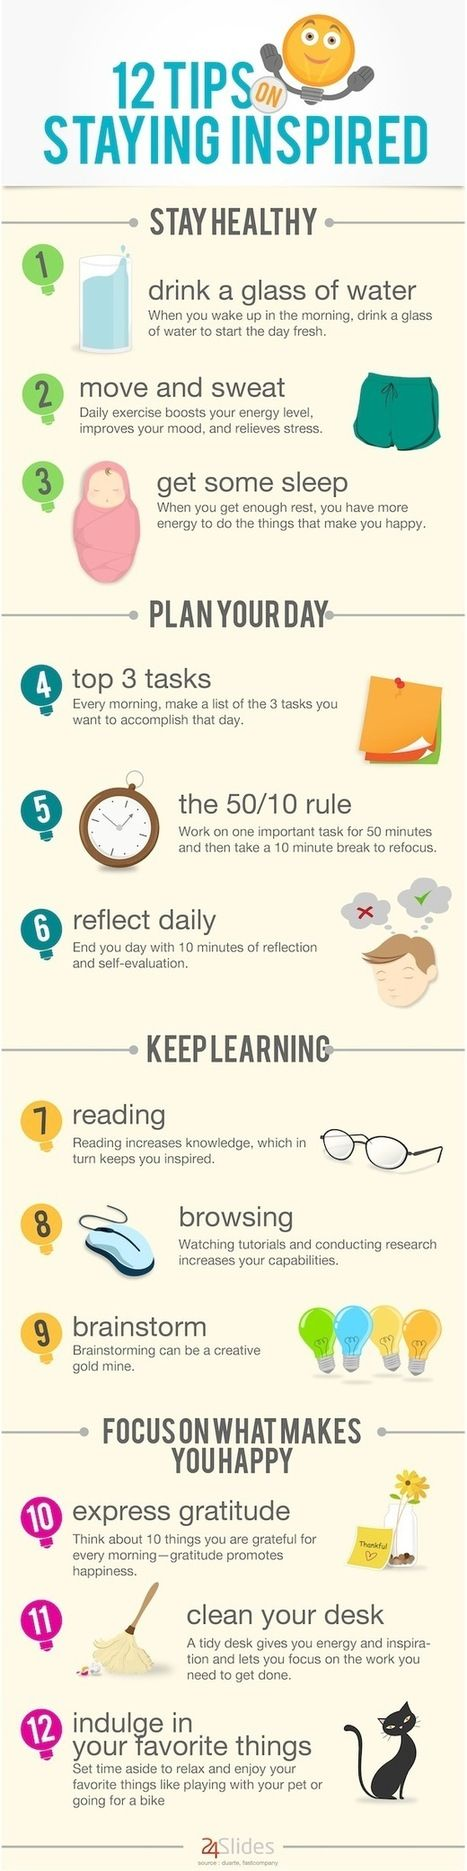 12 Tips on Staying Inspired #nfographic | Serving and Leadership | Scoop.it